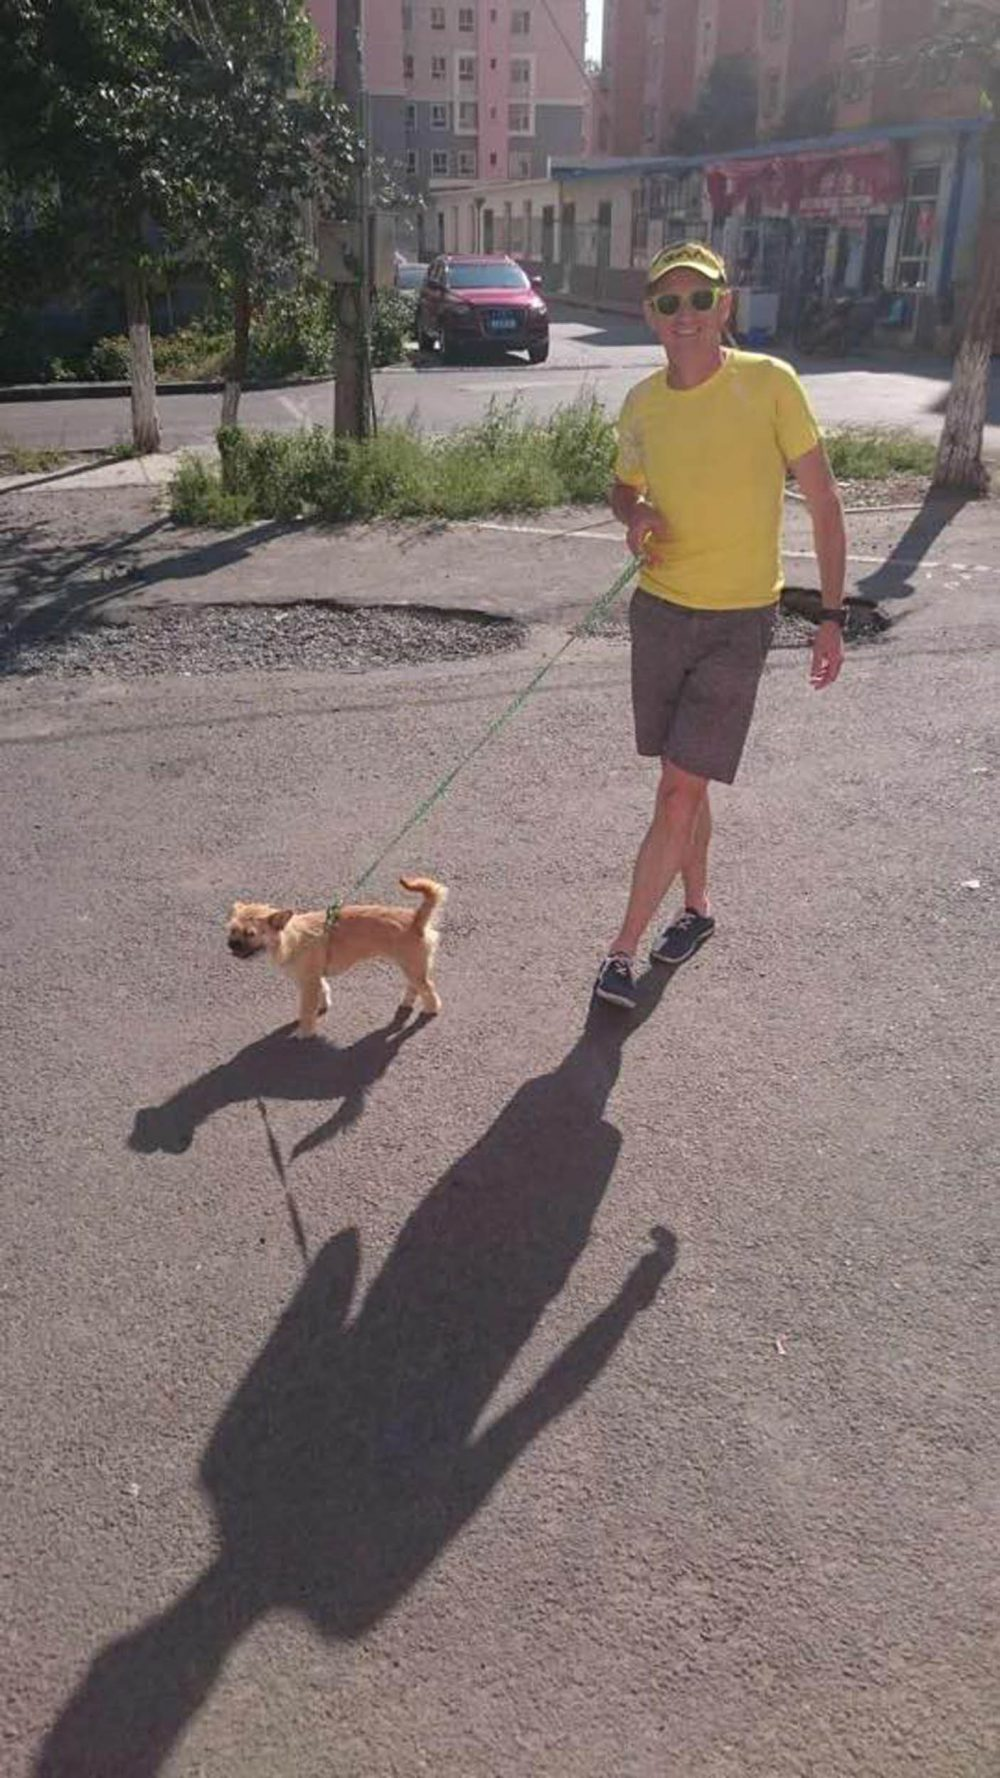 Dion and Gobi take their first walk after they were reunited - with the dog now firmly tethered A HEARTWARMING video shows the moment Gobi the missing dog was reunited with the runner who wants to give him a new home in Scotland. Stray pup Gobi had been lost in Urumqi, China for over a week ago after running off just days before she was due to begin her journey to Britain. Athlete Dion Leonard planned to adopt the lovable pooch and bring her back home to Edinburgh after the pair struck up an unlikely friendship. The inseparable pair became the stars of a Gobi desert marathon after being spotted running alongside each other during the gruelling 250km marathon in June. But in a remarkable turn of events, the four legged friend went missing eight days ago when she ran out of an open door while being looked after at a friends house. At that point, almost £10,000 was raised to help Dion and volunteers search for the pup. Dion, 41, flew back to China last week to head up the search. But last night (WED) after eight days on the run, a video was shared showing the twosome finally reunited and sharing their first moments together.